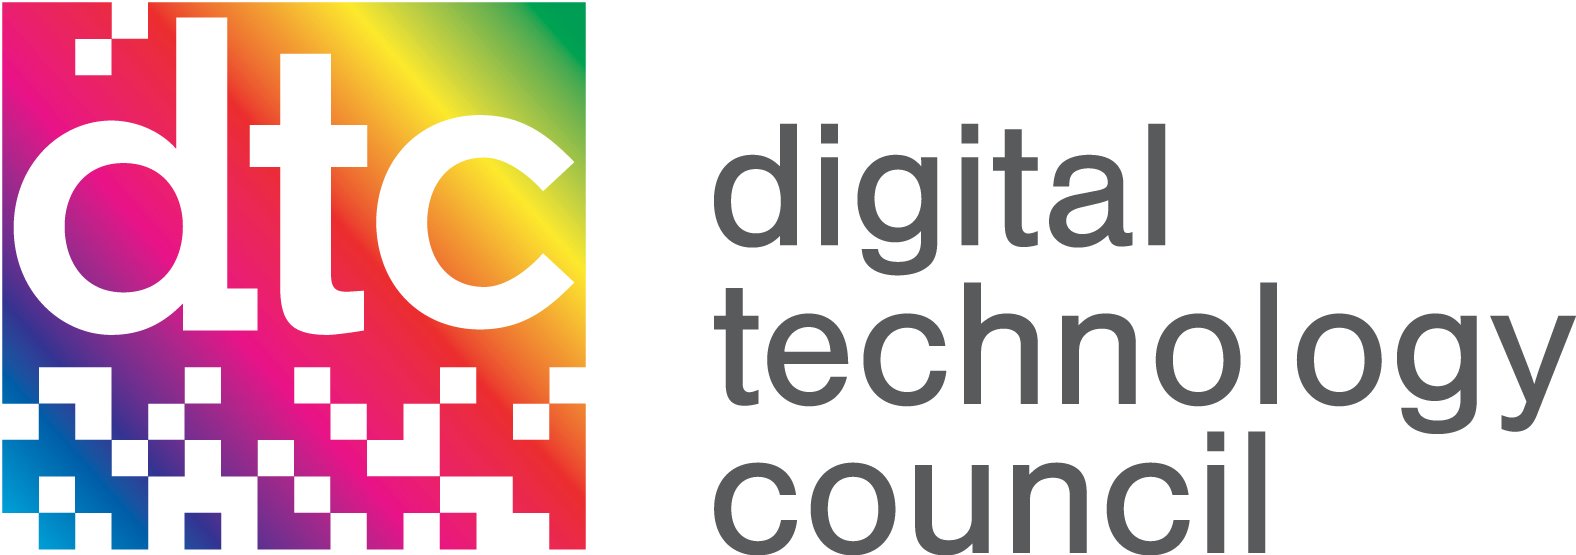 dtc webinar discover new digital opportunities with clickable